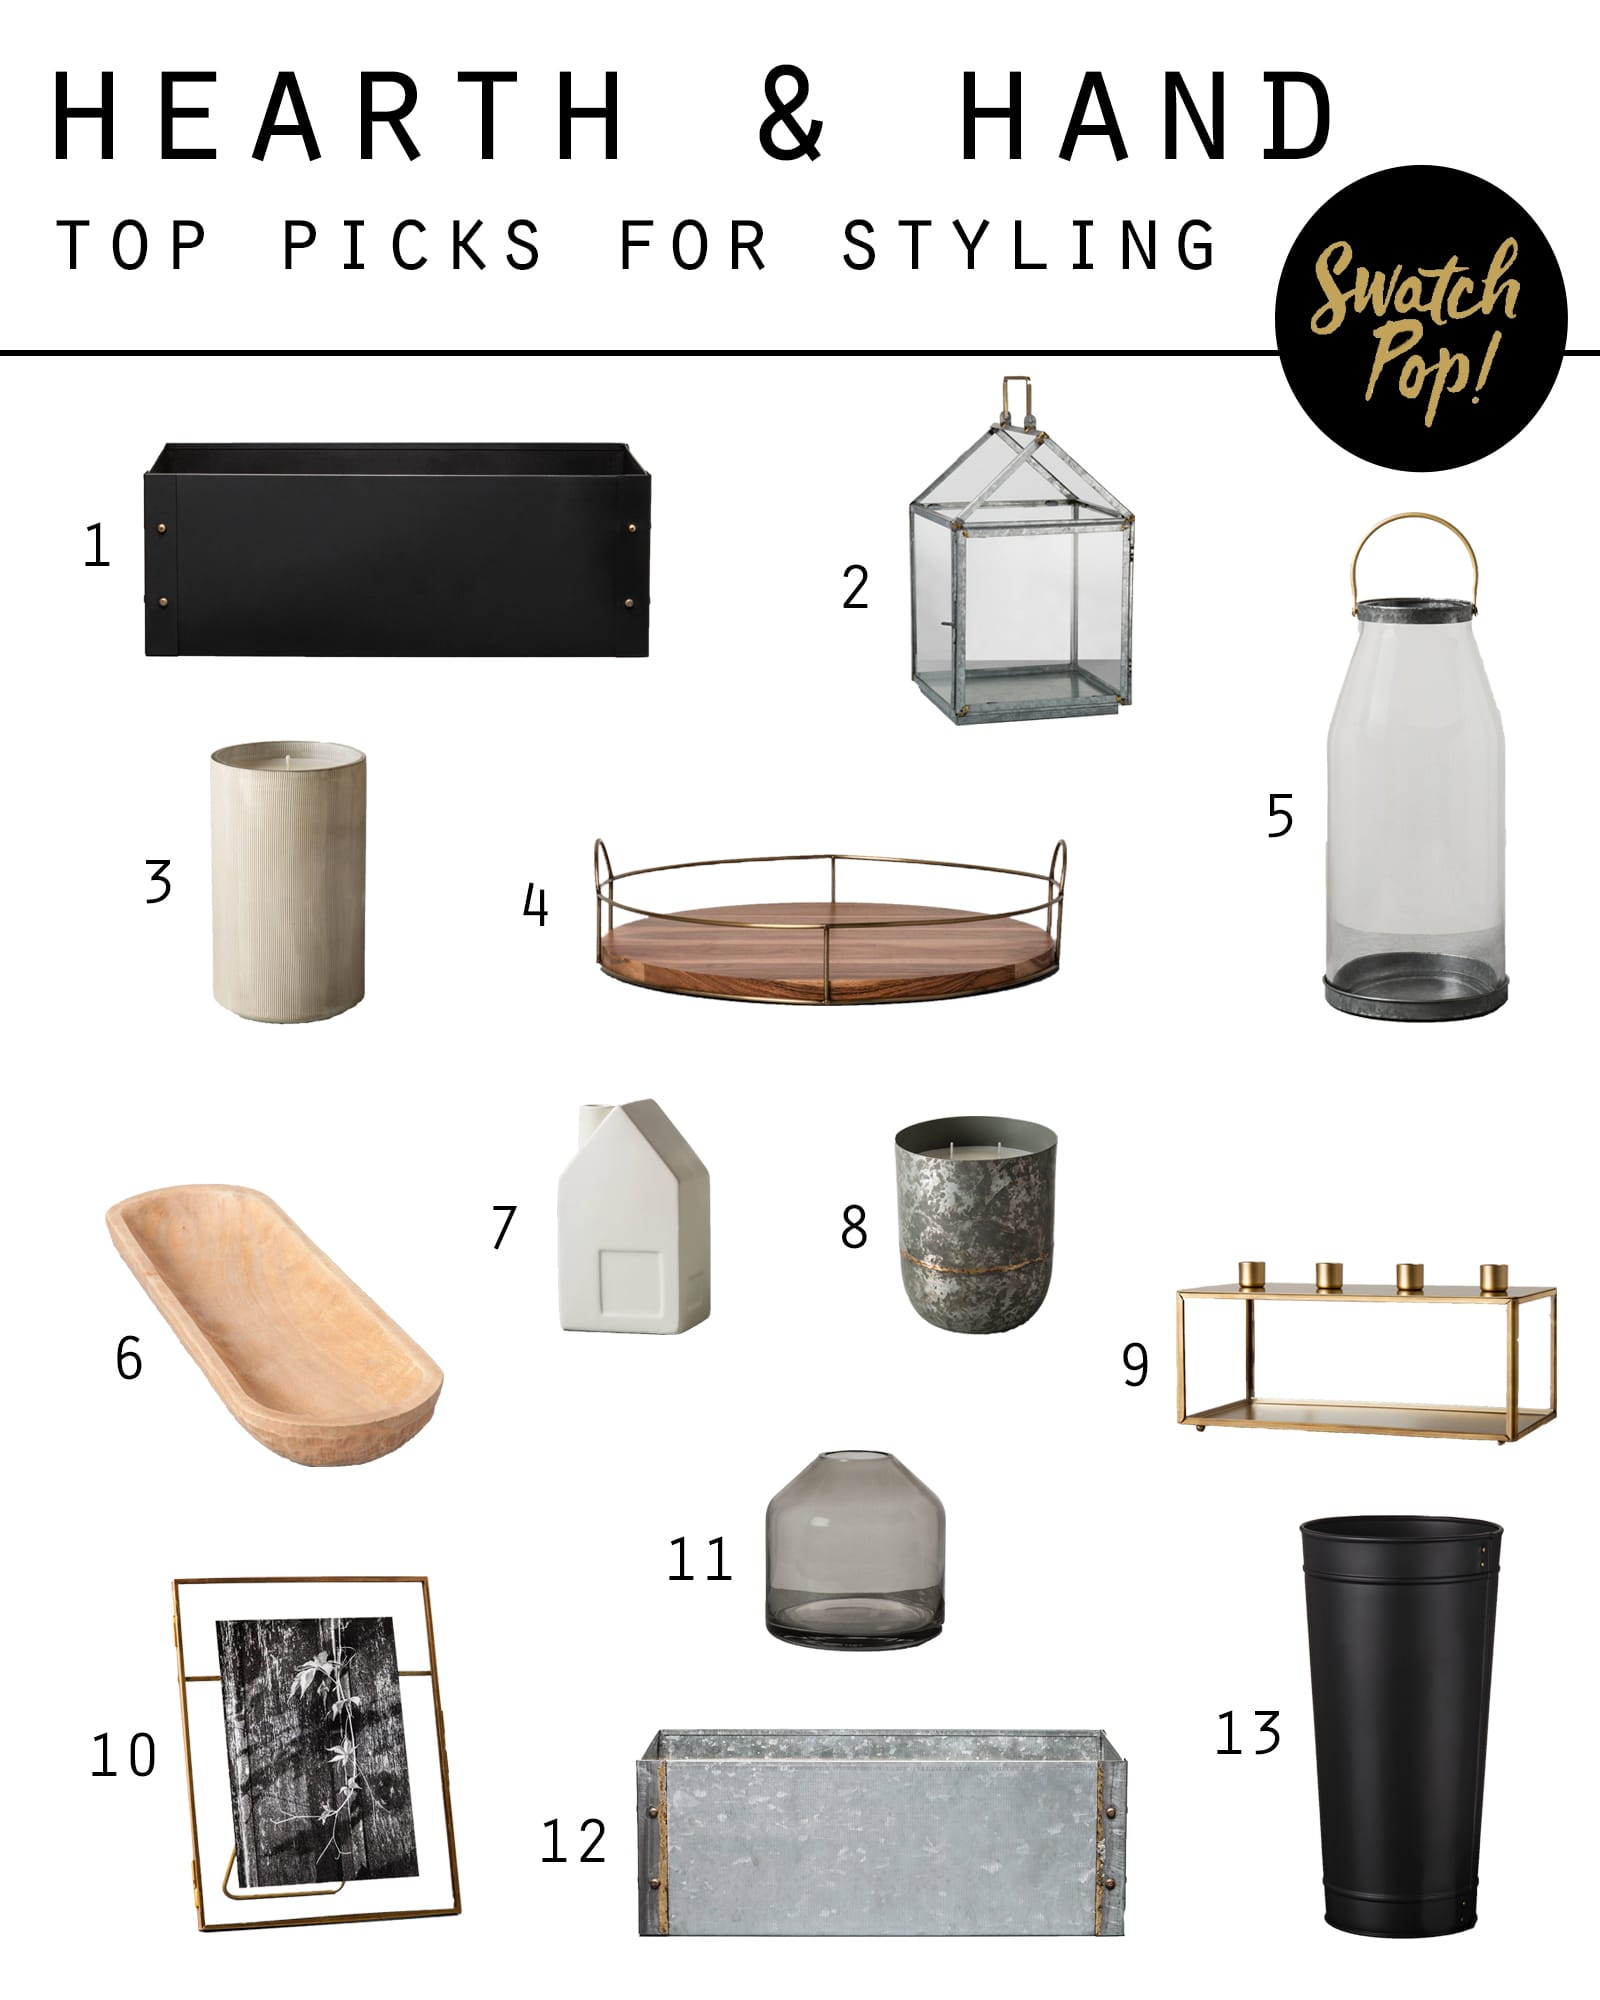 Health & Hand Top Picks for Styling